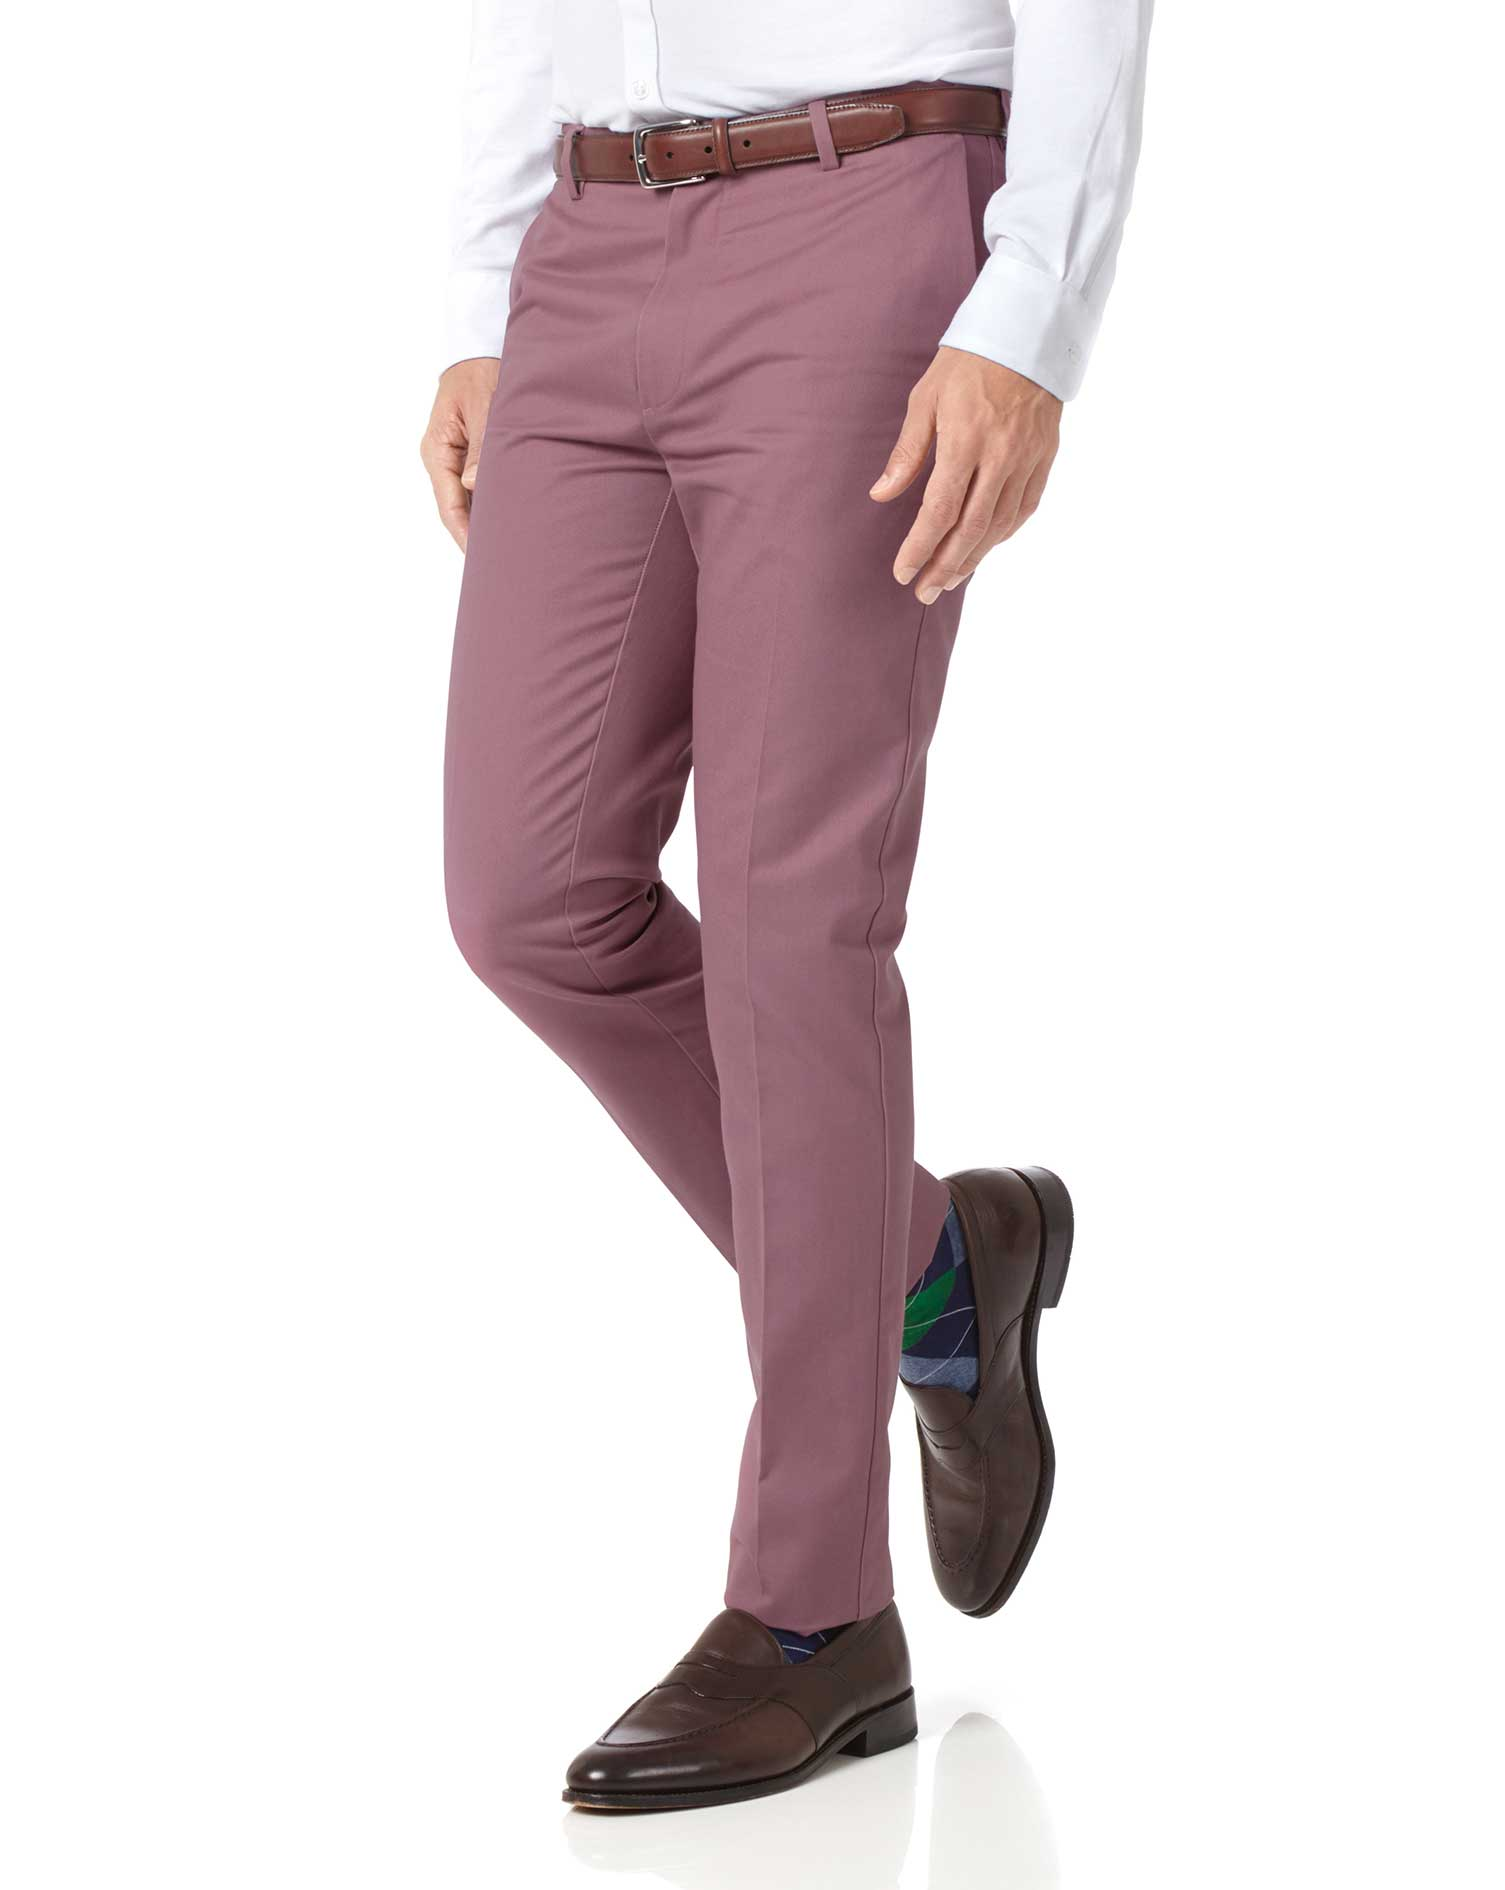 Light Pink Extra Slim Fit Flat Front Non-Iron Cotton Chino Trousers Size W36 L34 by Charles Tyrwhitt